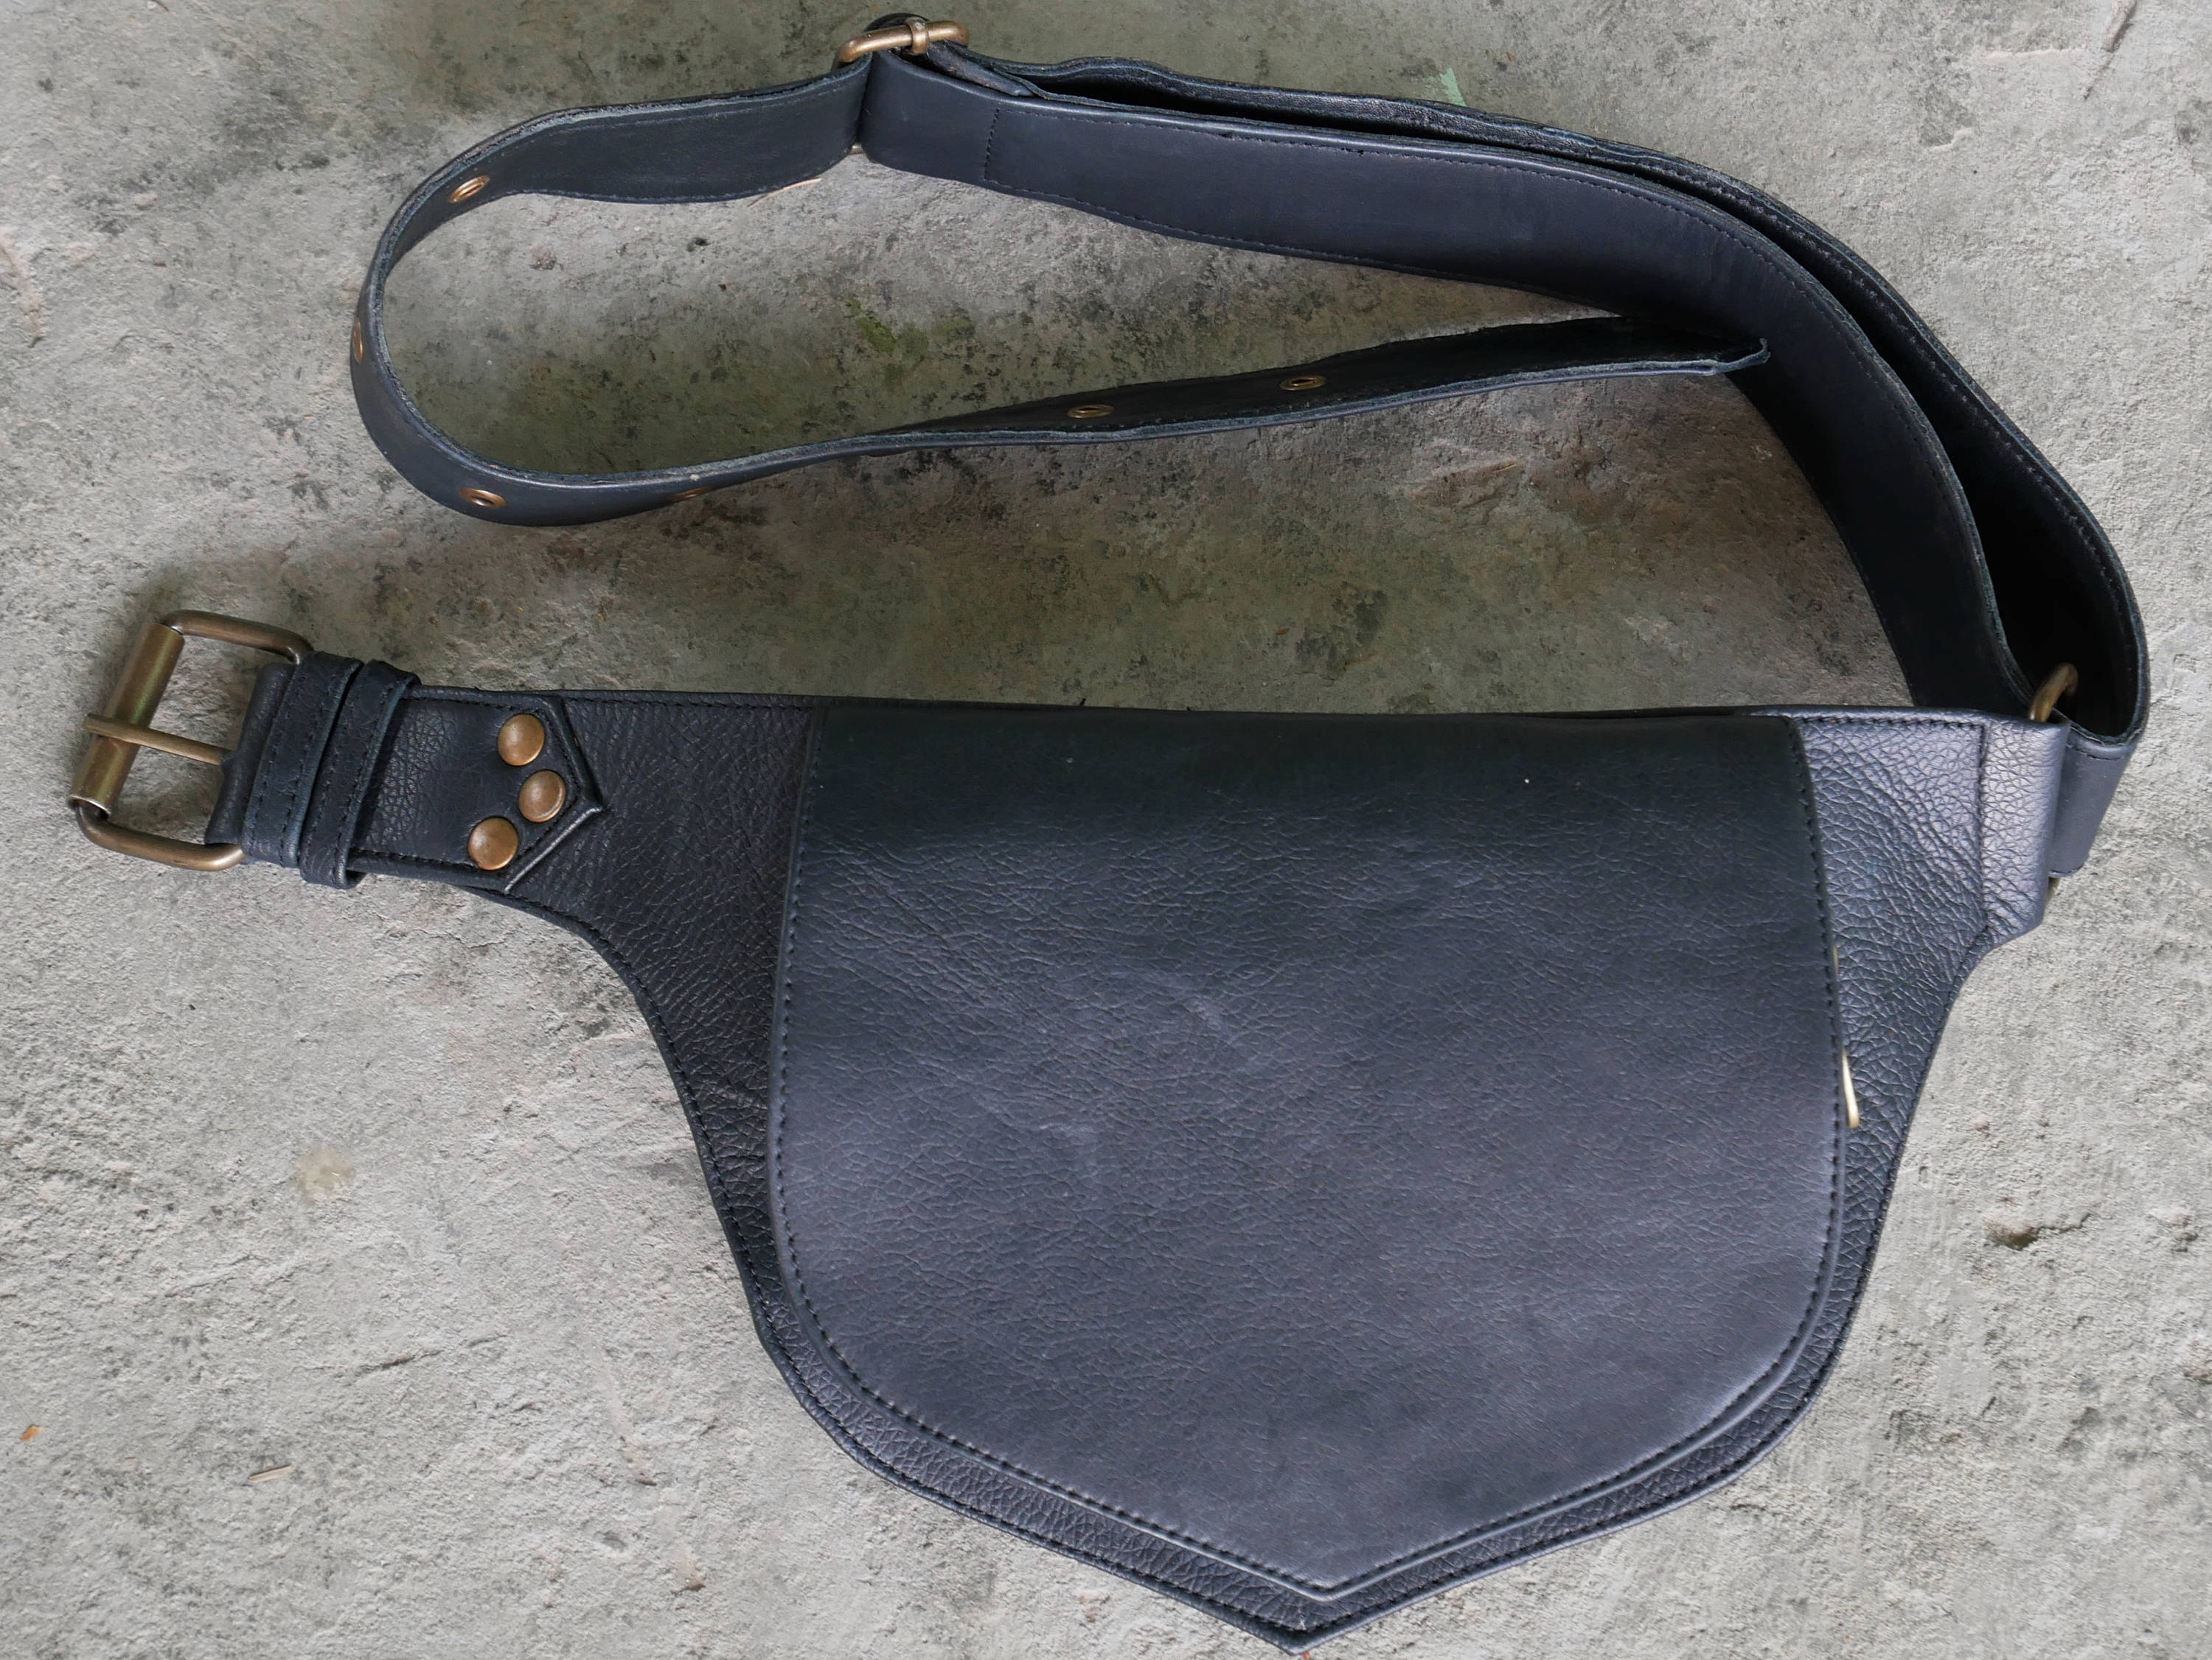 Leather hip bag - black waist bag - hippie chic fanny pack - boho leather belt bag